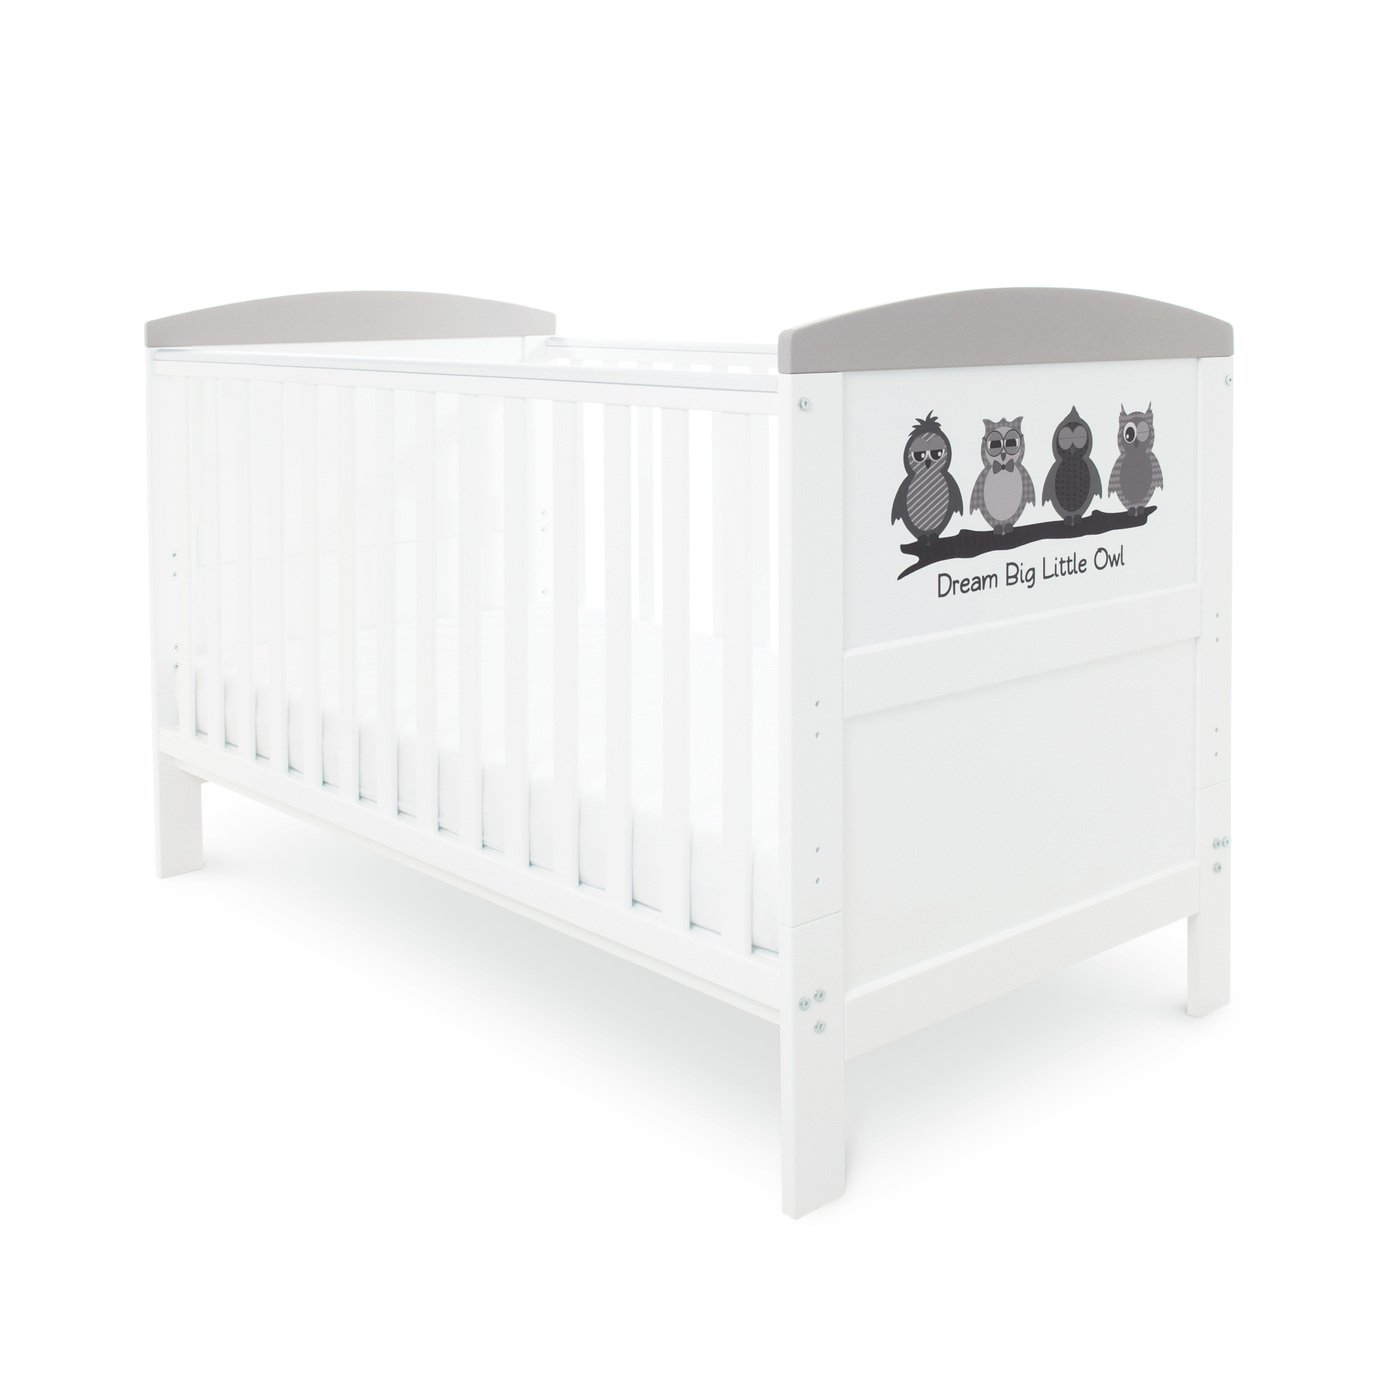 Babyhoot Coleby Style Cot Bed - Dream Big Little Owl